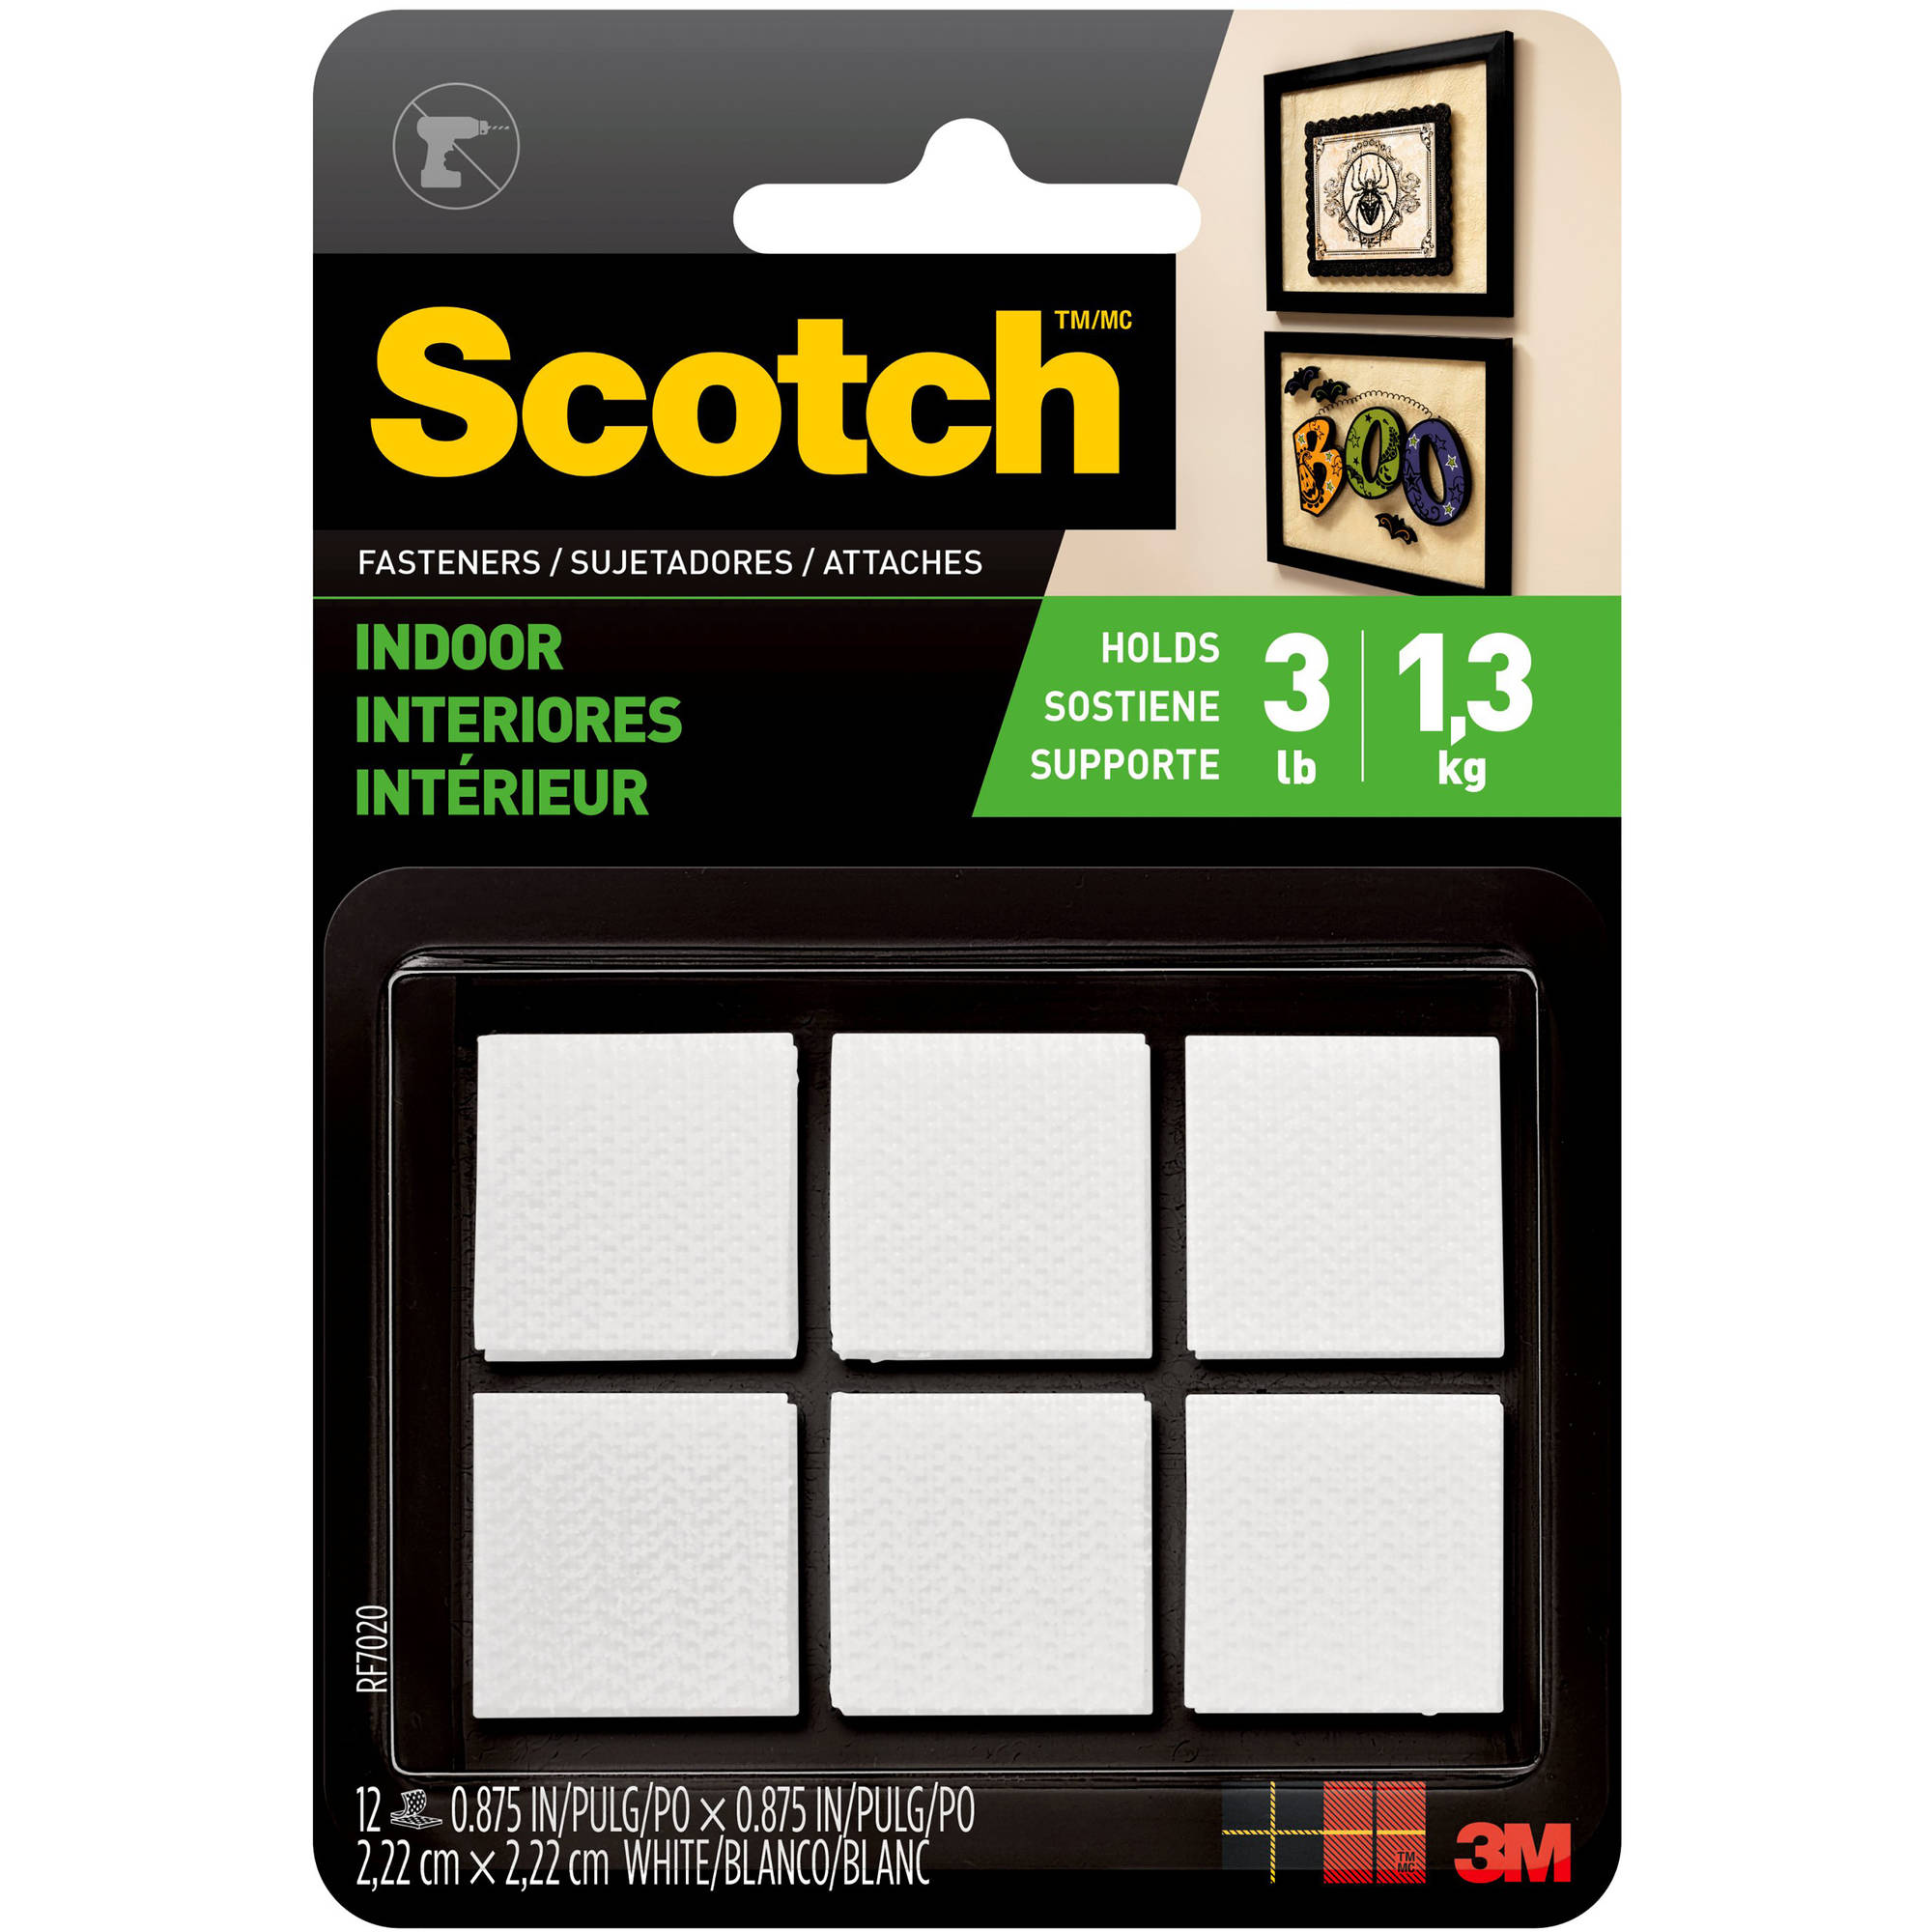 Scotch Indoor Fasteners, 7/8 in. x 7/8 in., White, 12 Sets/Pack